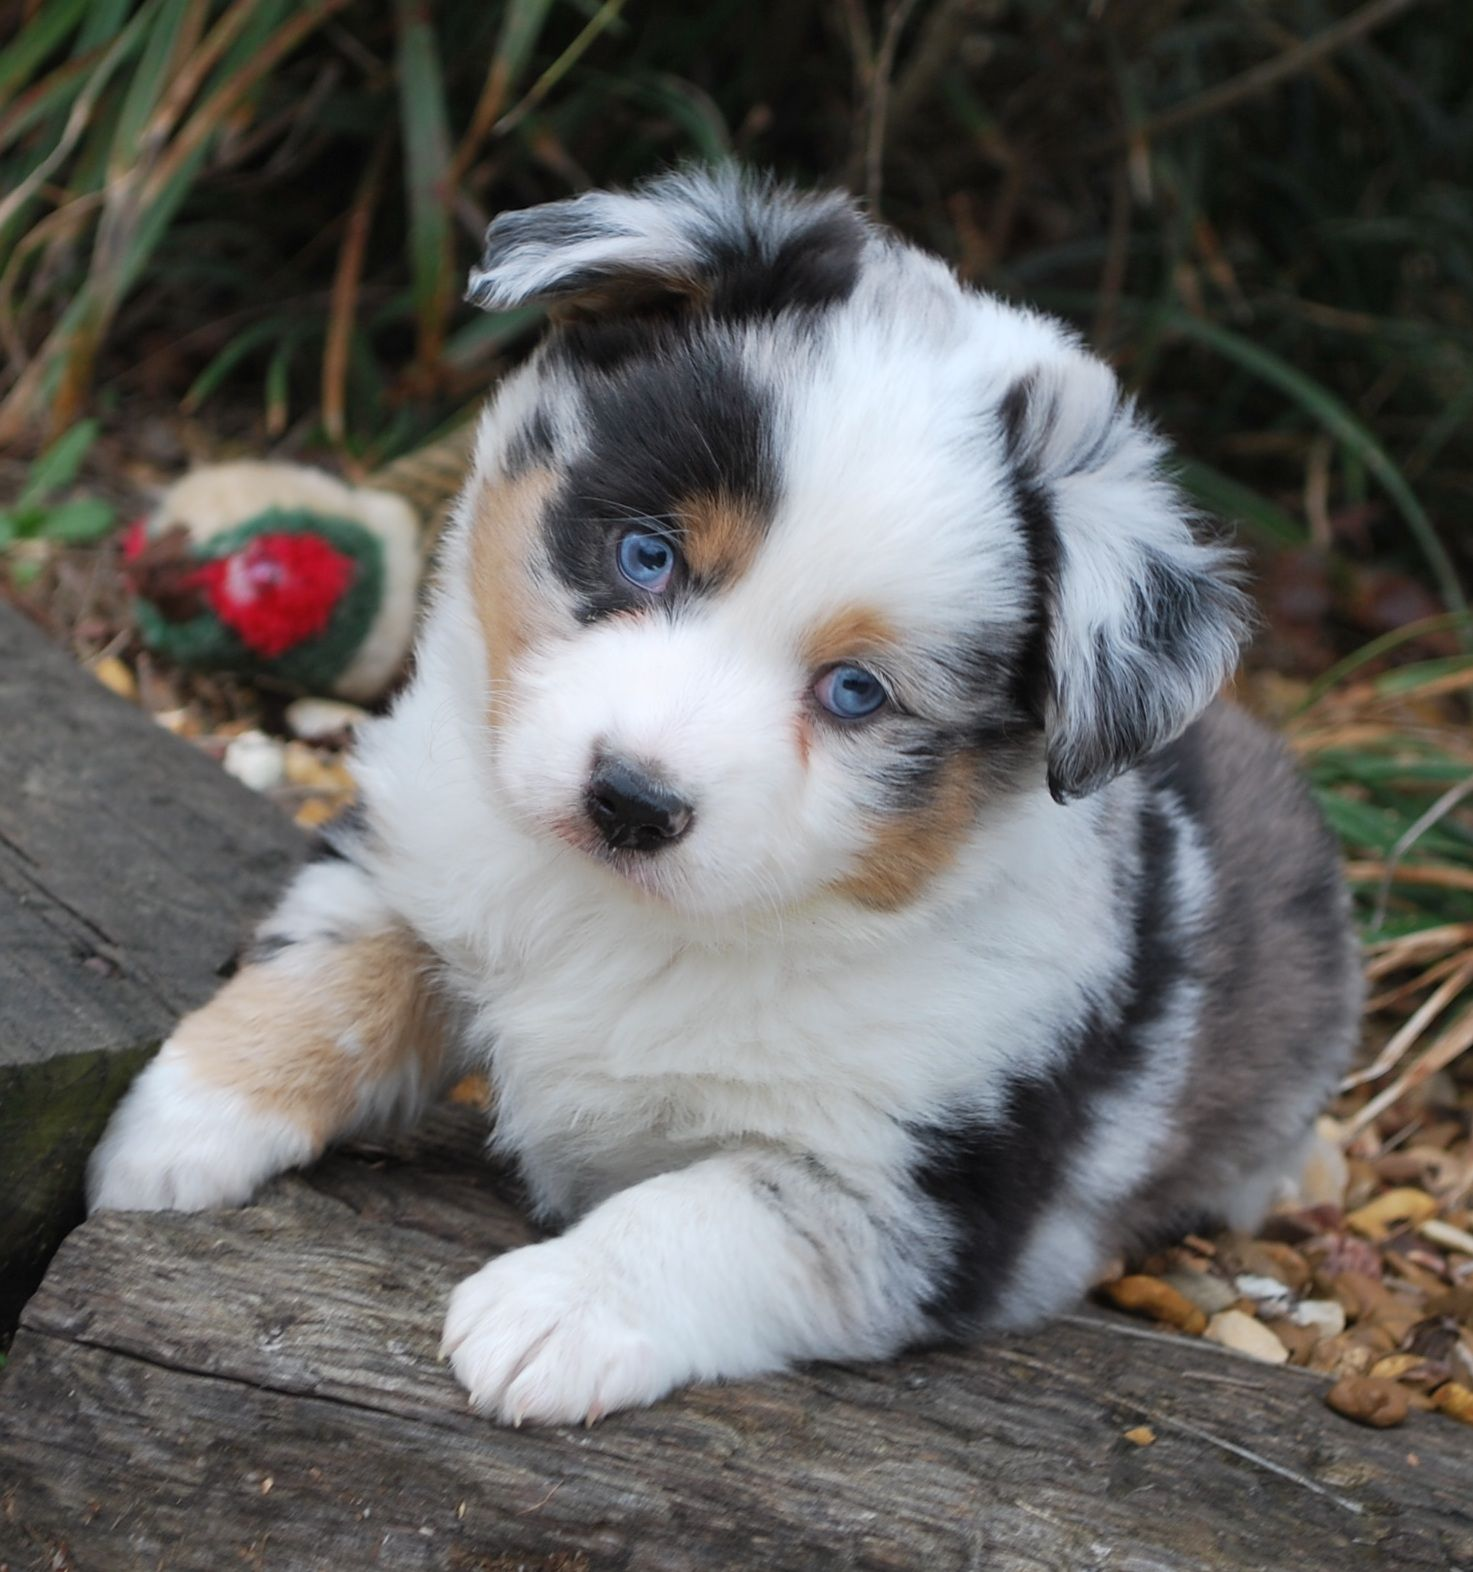 Cute Mini Aussie How Adorable Wish She D Let Me Have One She Owes Me Parsons Place Stable Australian Shepherd Puppies Aussie Puppies Shepherd Puppies